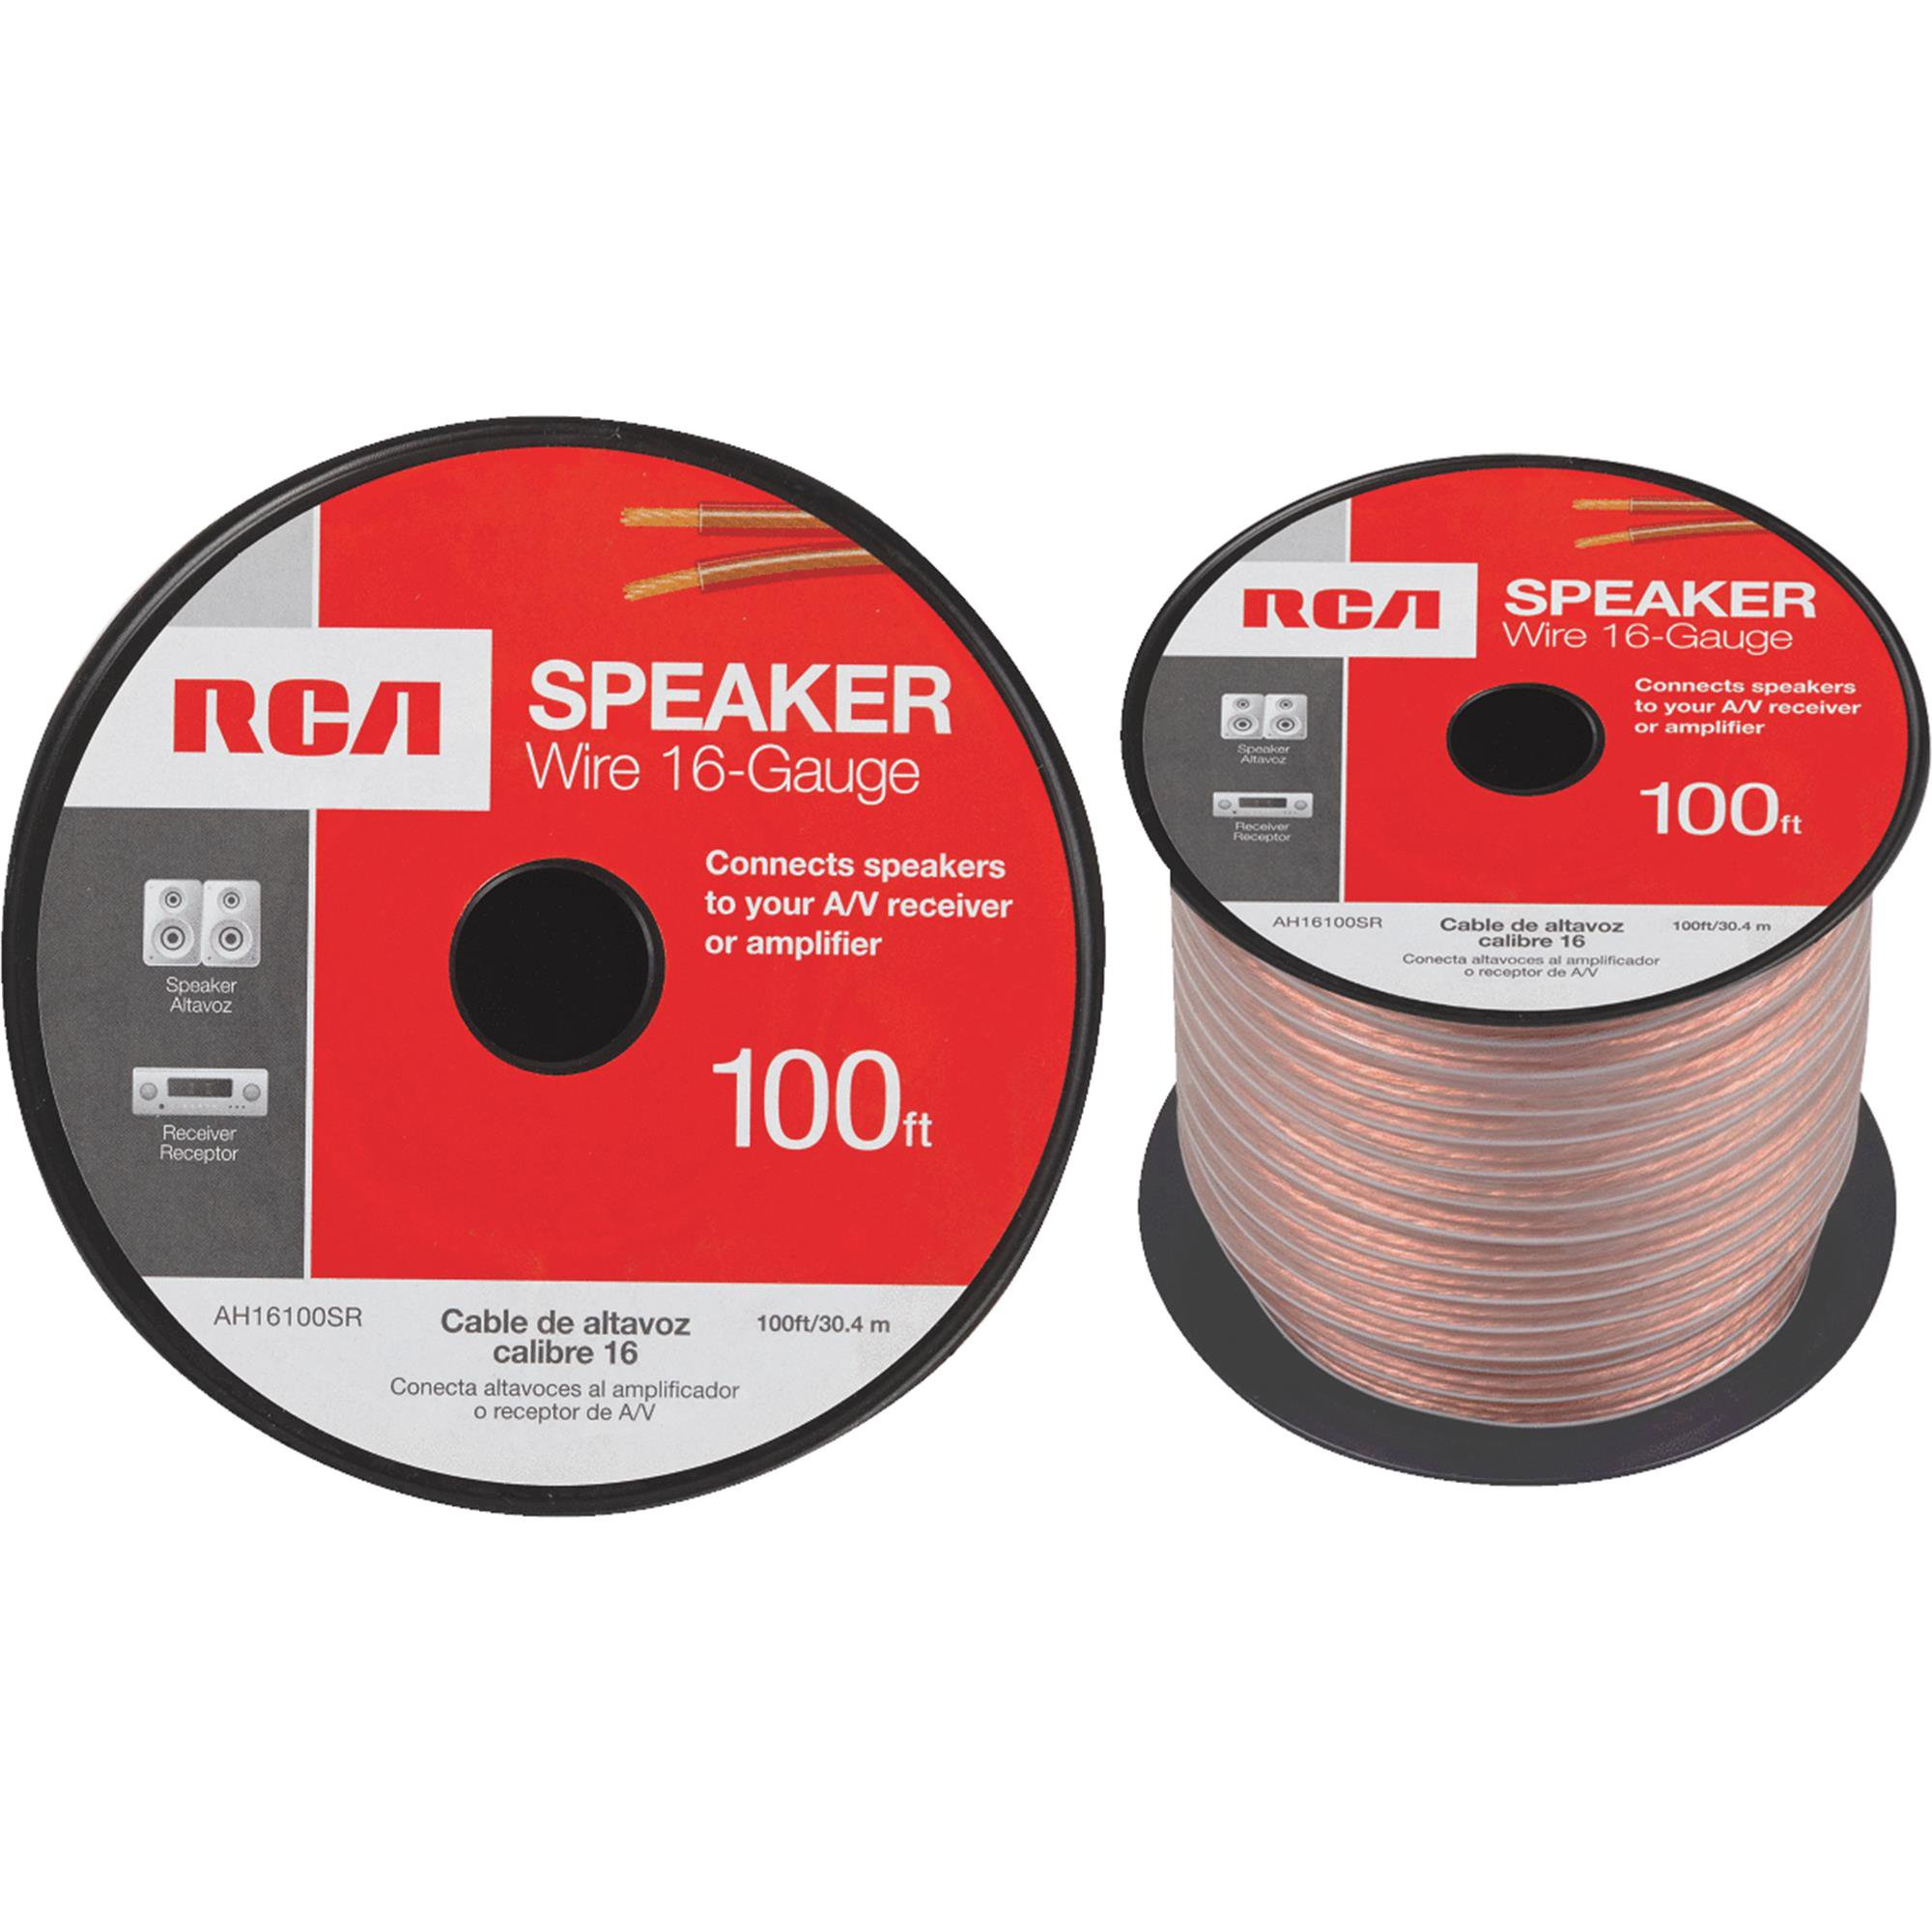 16 Gauge Electrical Wire Specifications Ook 50 Ft Aluminum Hobby Wire50176 The Home Depot Rca Speaker 100 Walmart Com Lowes